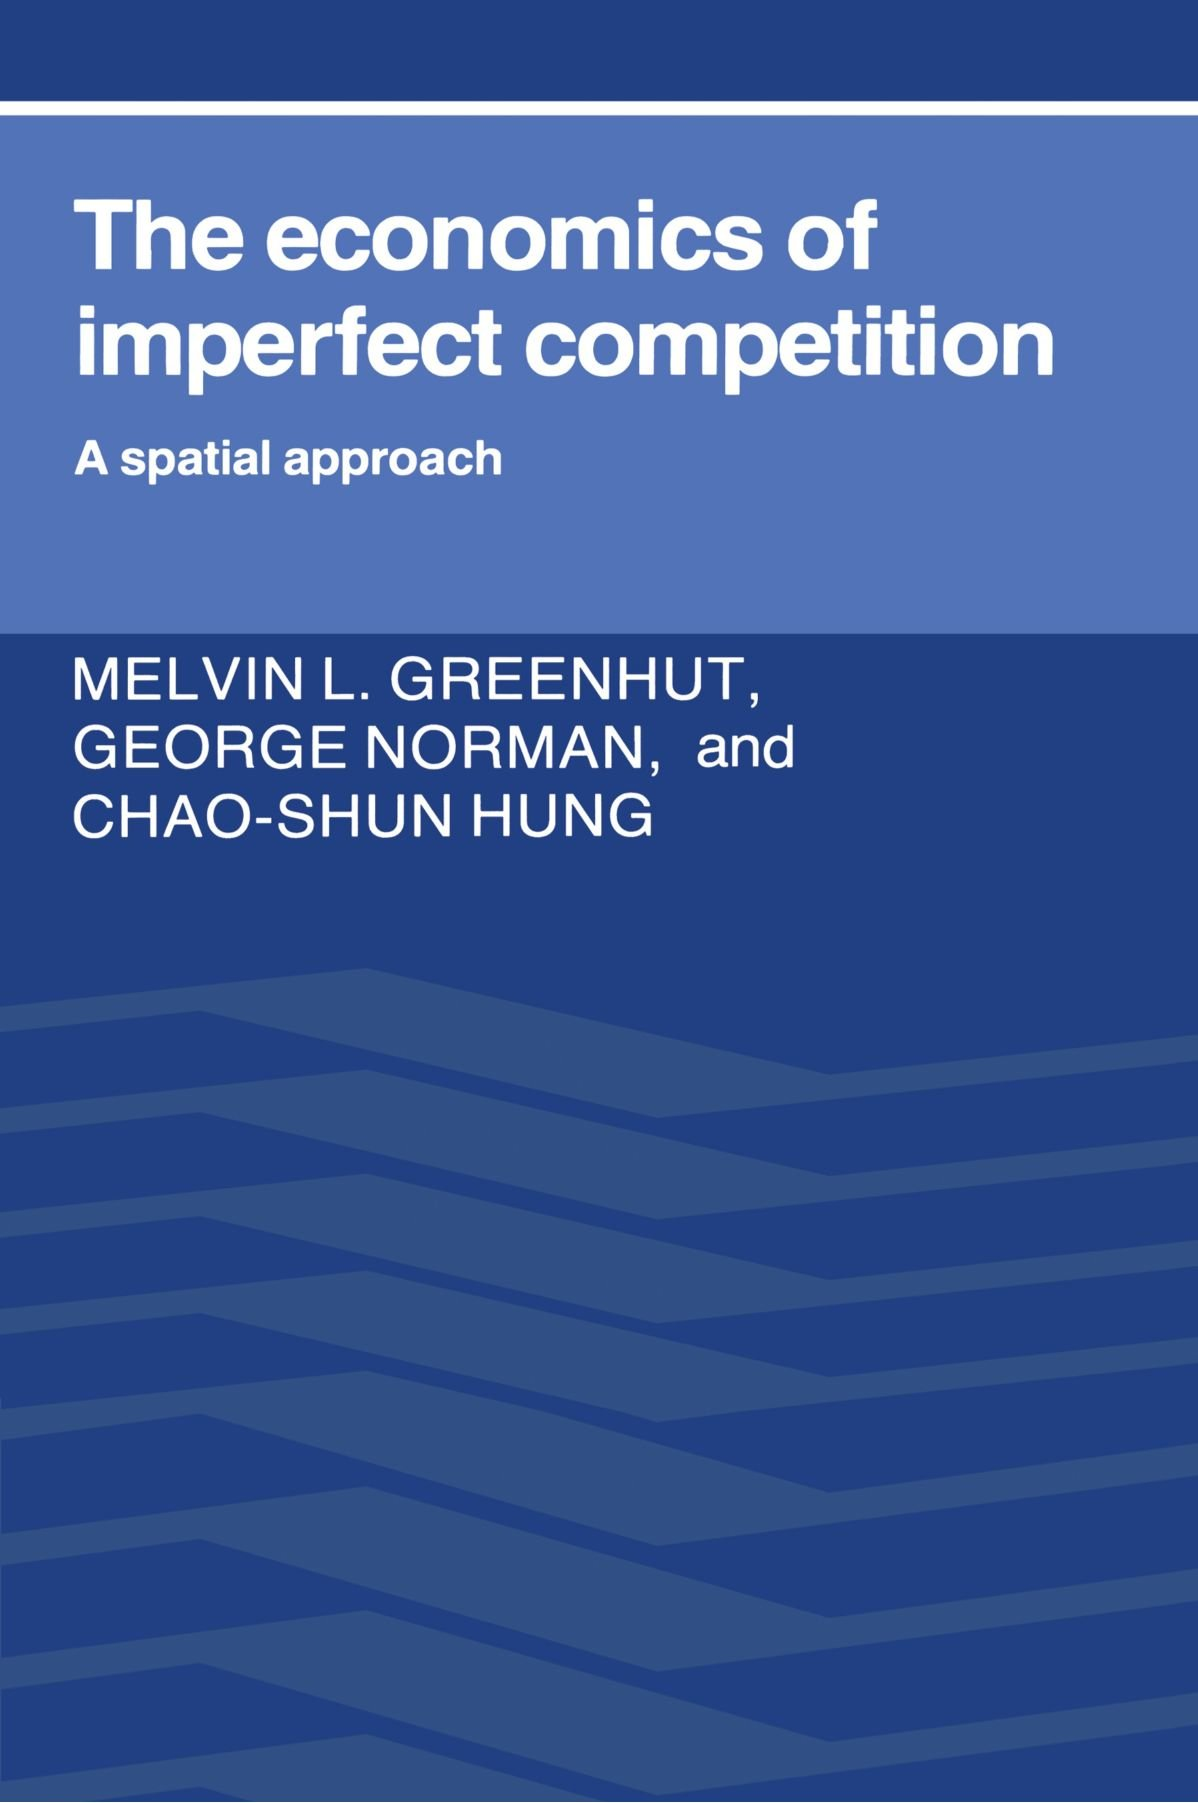 The Economics of Imperfect Competition: A Spatial Approach